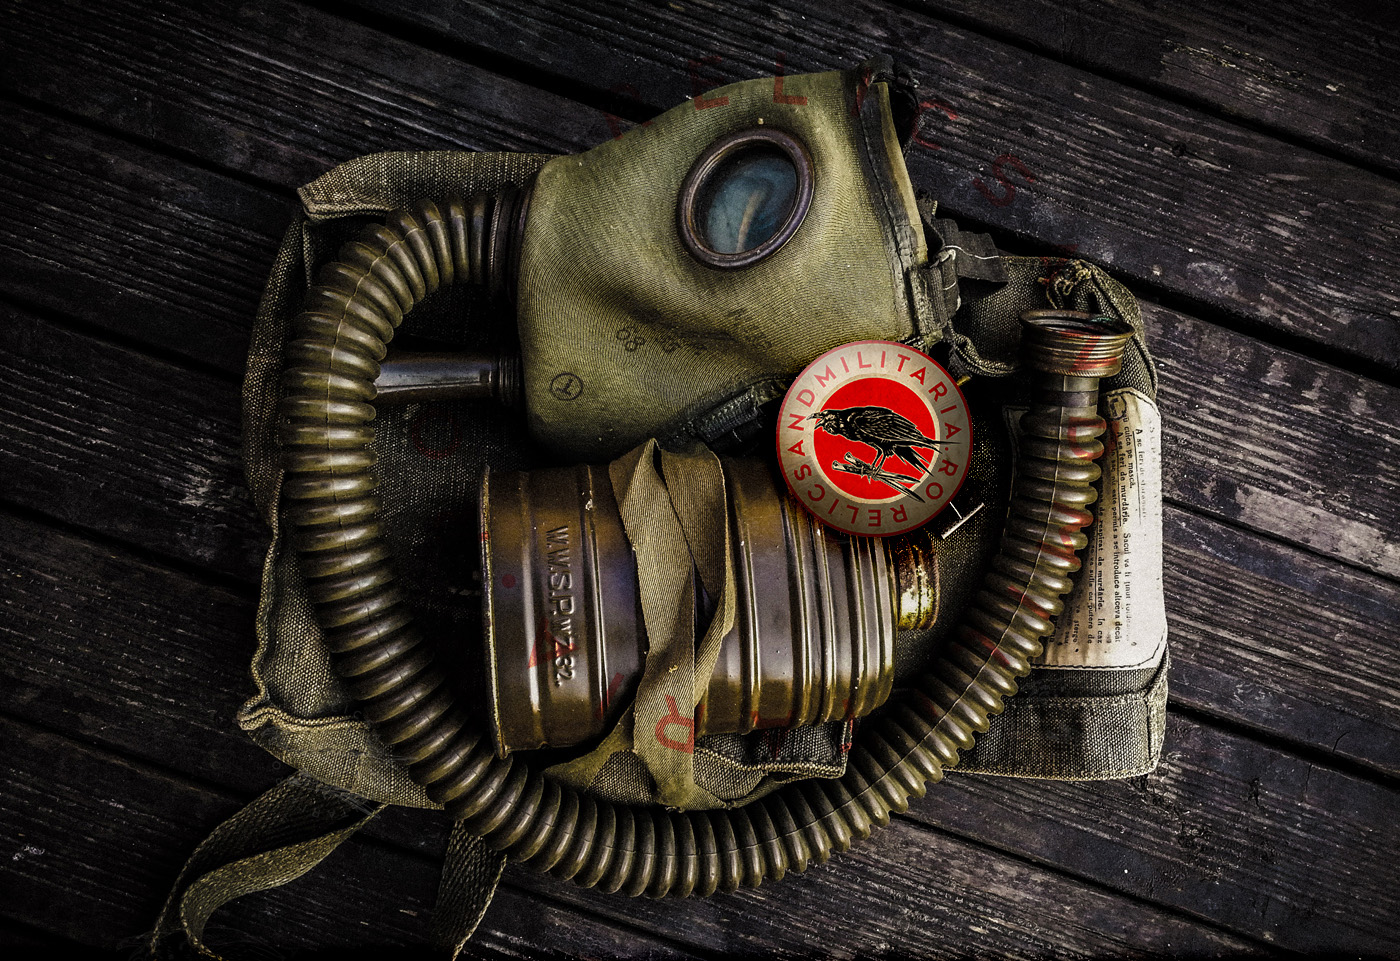 Romanian Army ww2 gas mask